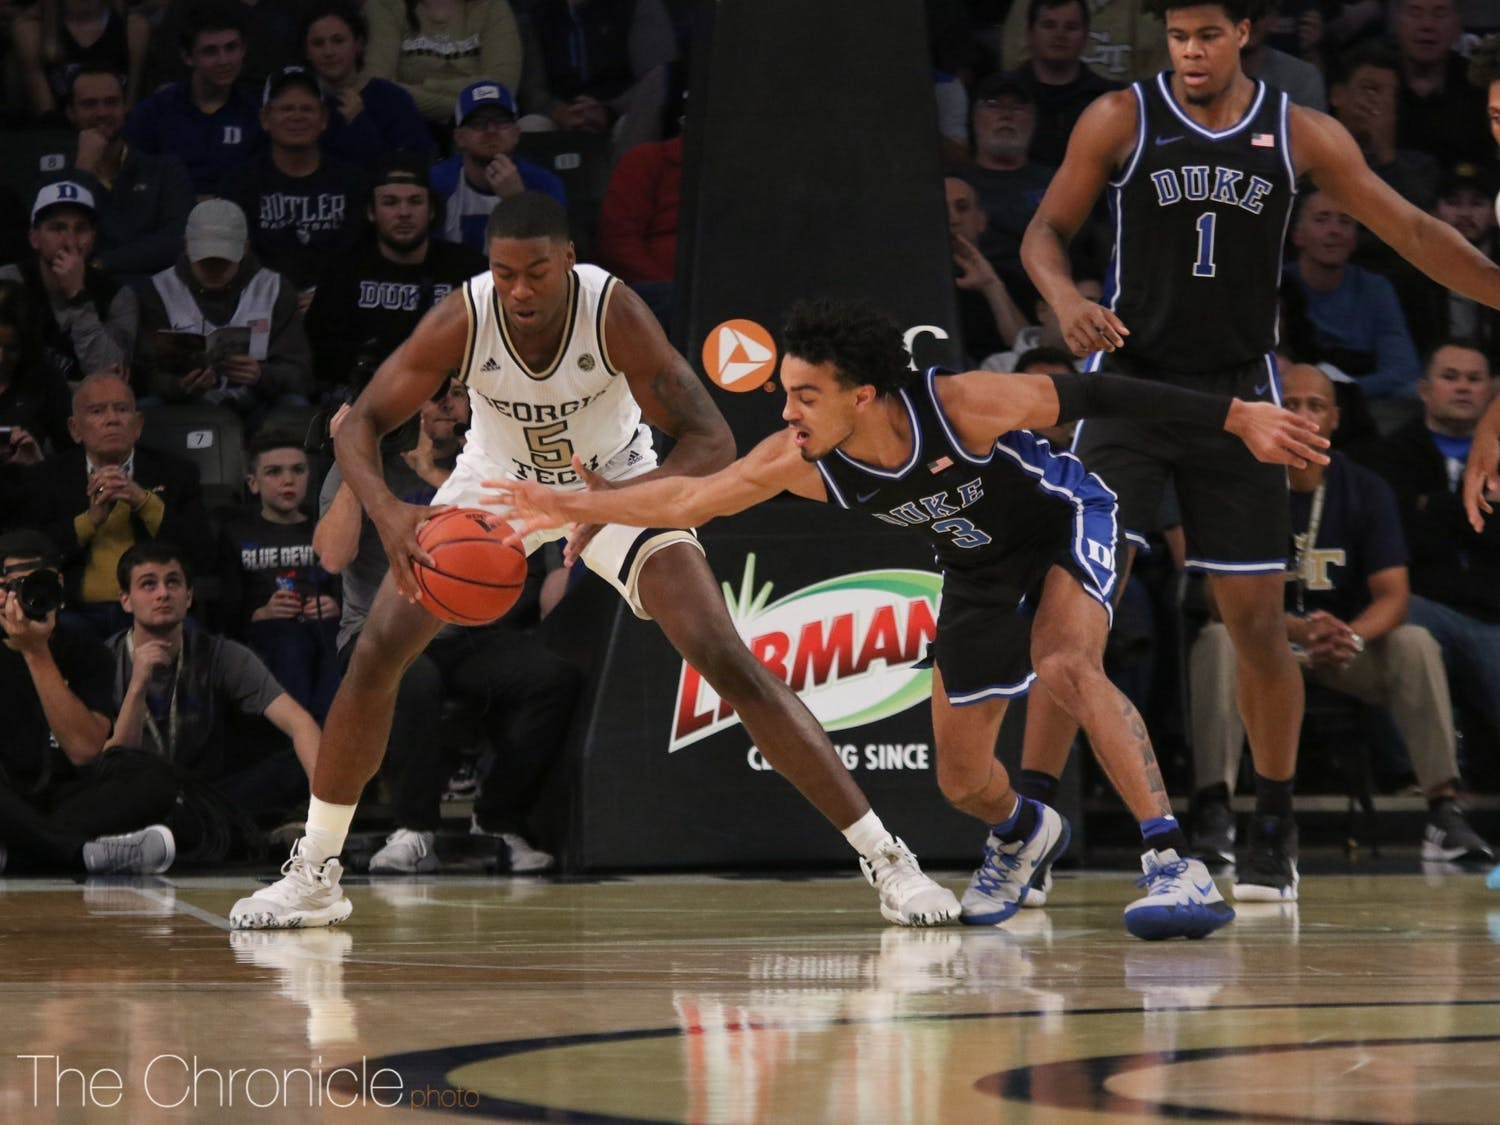 Tre Jones' perimeter defense will be a key against Notre Dame's 3-point centric offense